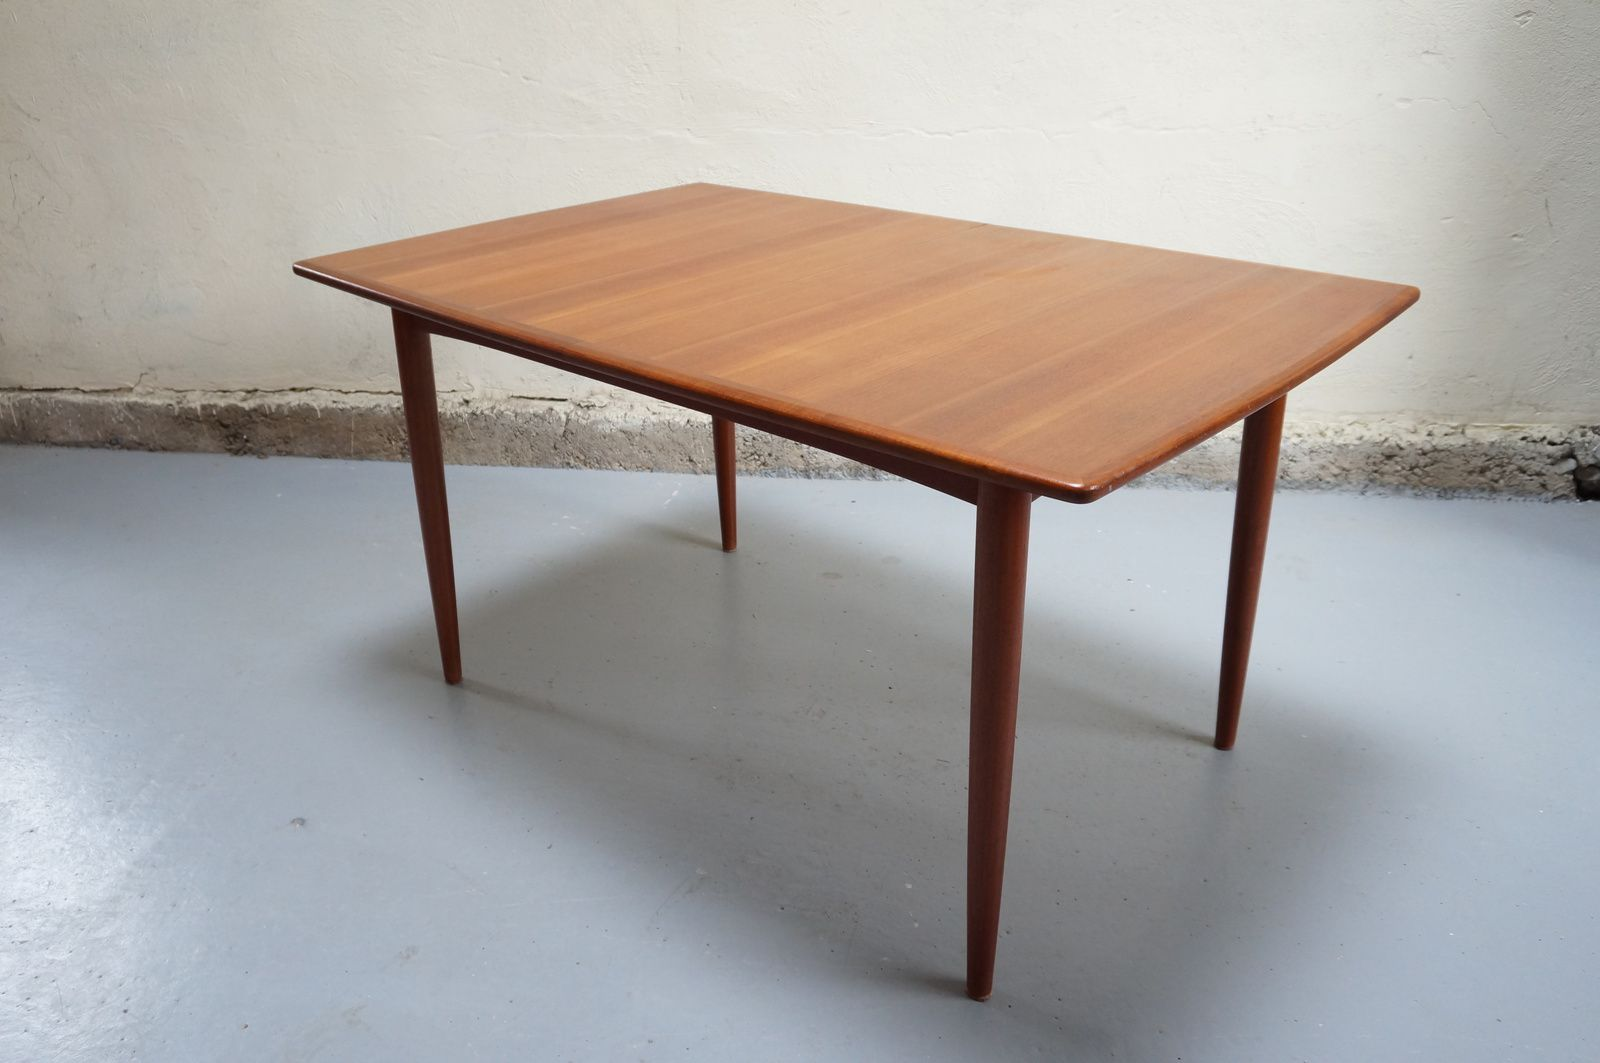 Vendue table manger scandinave teck design danois for Table de salle a manger annee 50